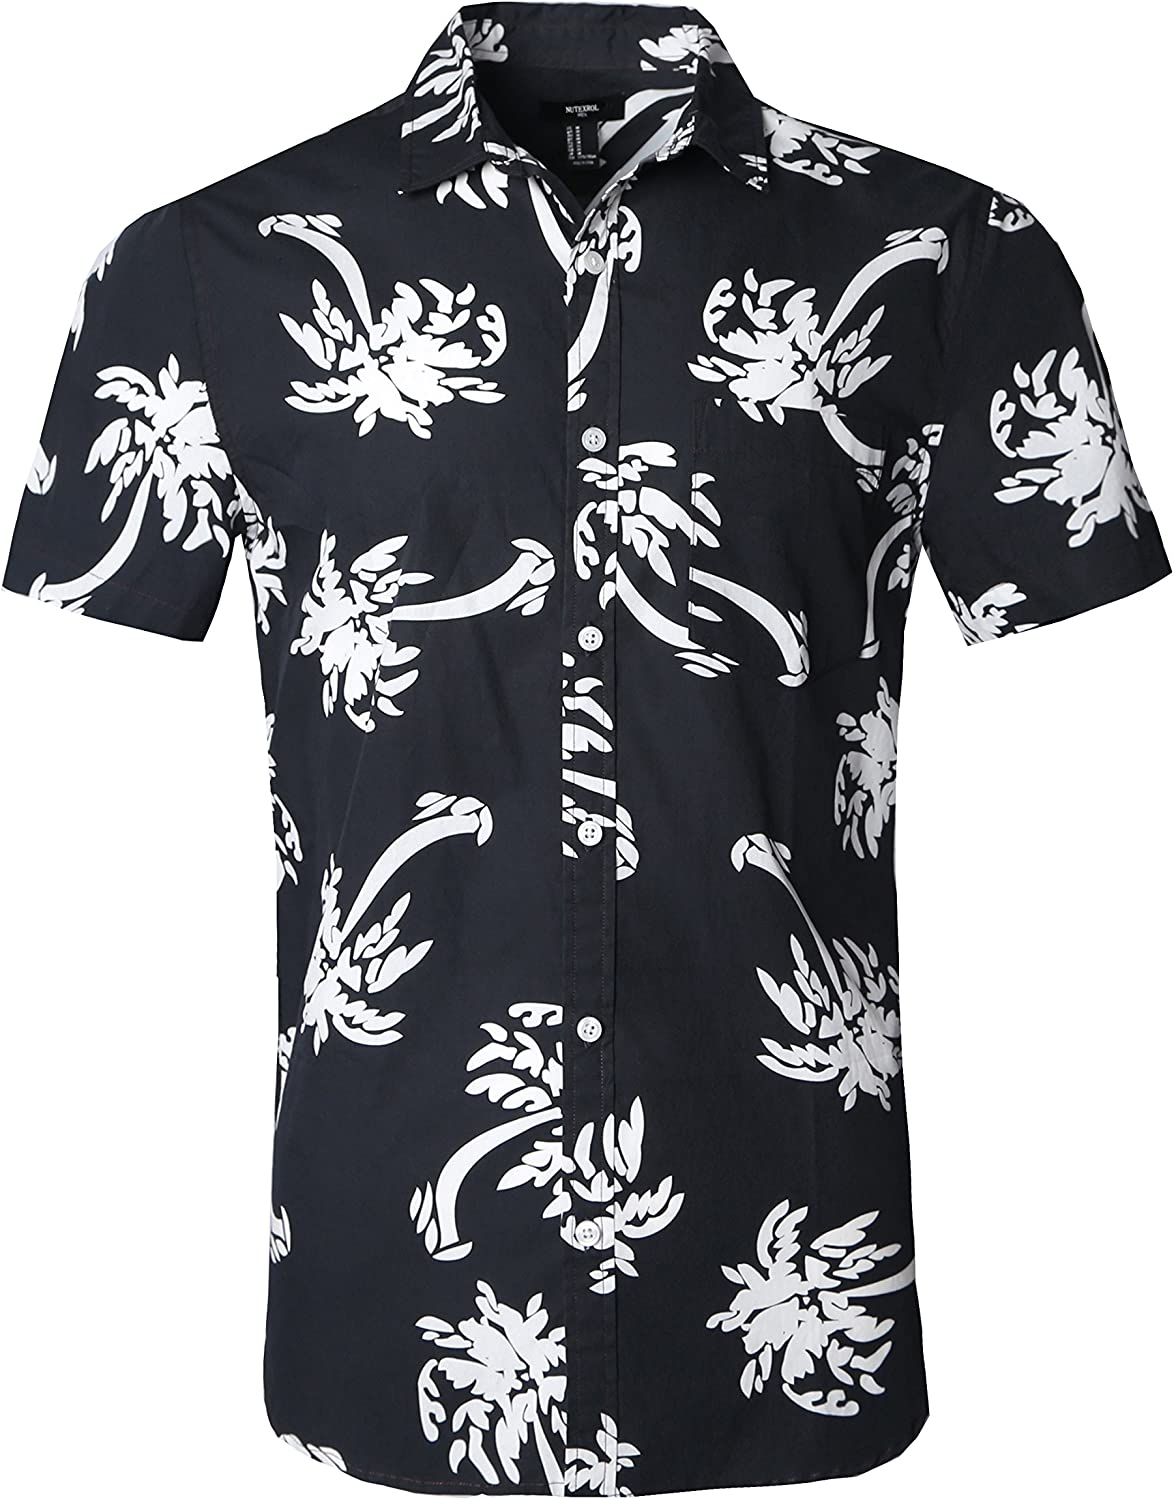 NUTEXROL Mens Hawaiian Shirts Standard-Fit Polyester OFFer Palm Cotton Our shop OFFers the best service